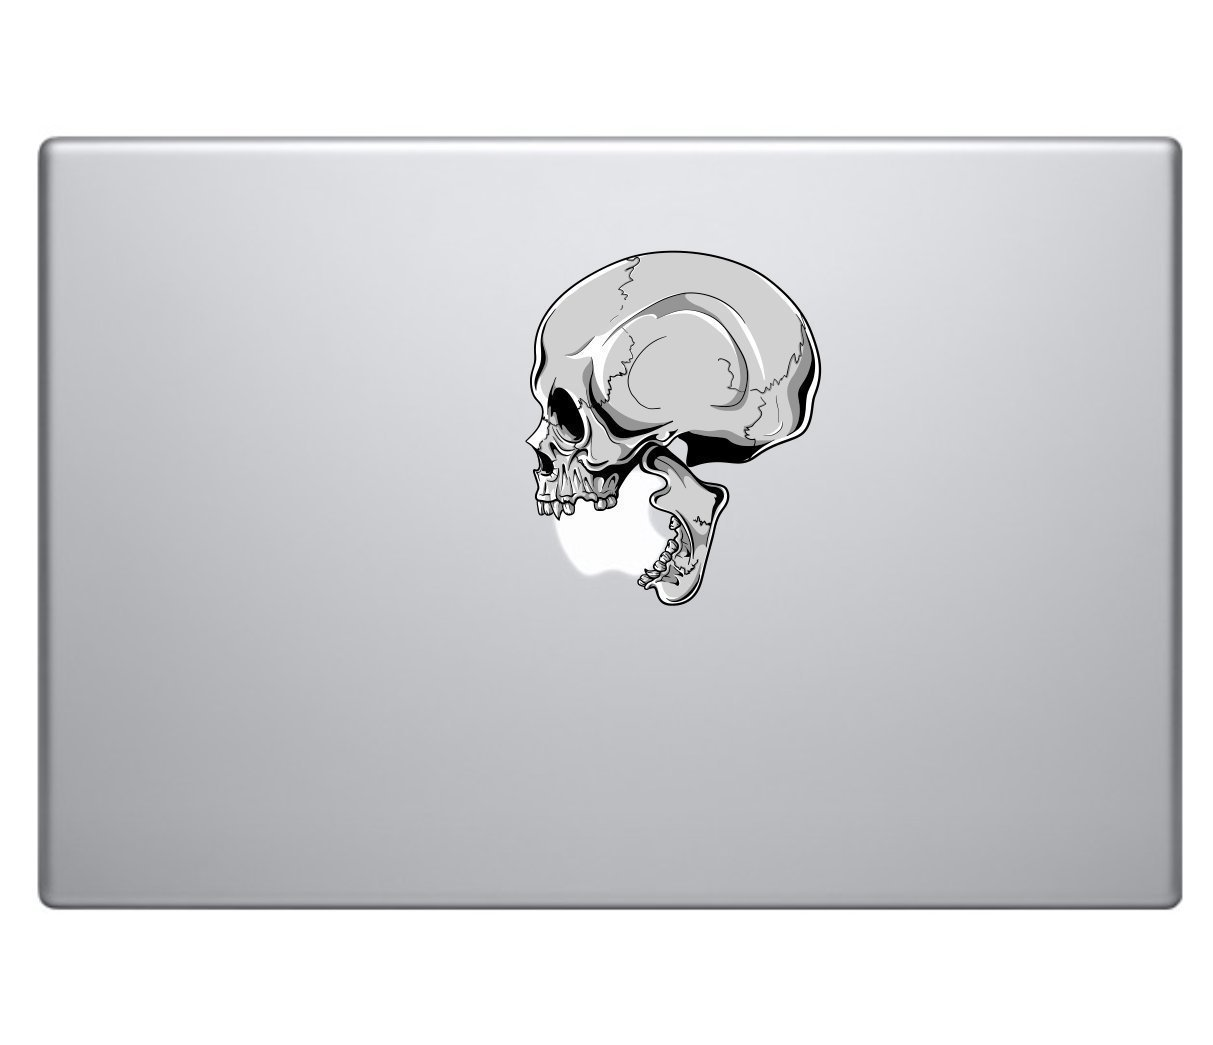 Human Skull Biting Apple Logo Vinyl Decal Sticker - Skin MacBook Pro Air Sticker 13